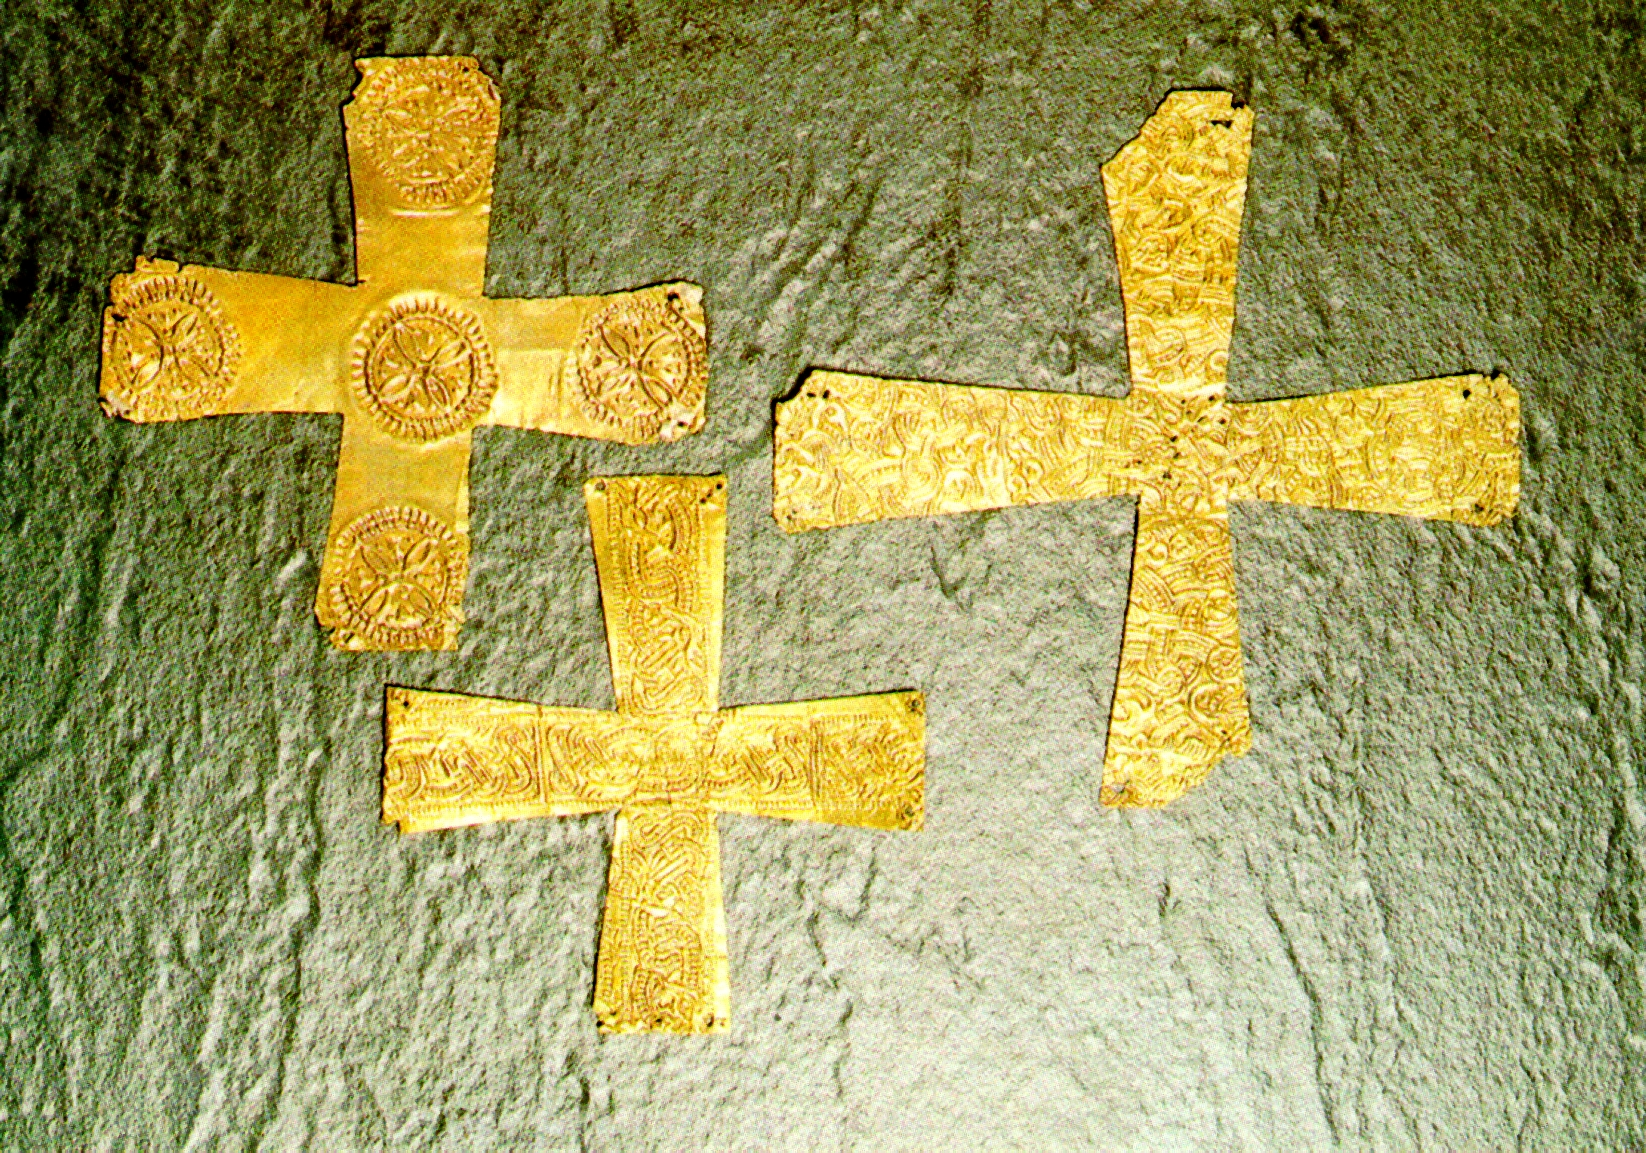 Bild 3: Kreuze in lombardischer Goldfolie geprägt, Civic Archaeological Museum of Bergamo (Autor: Giorces)